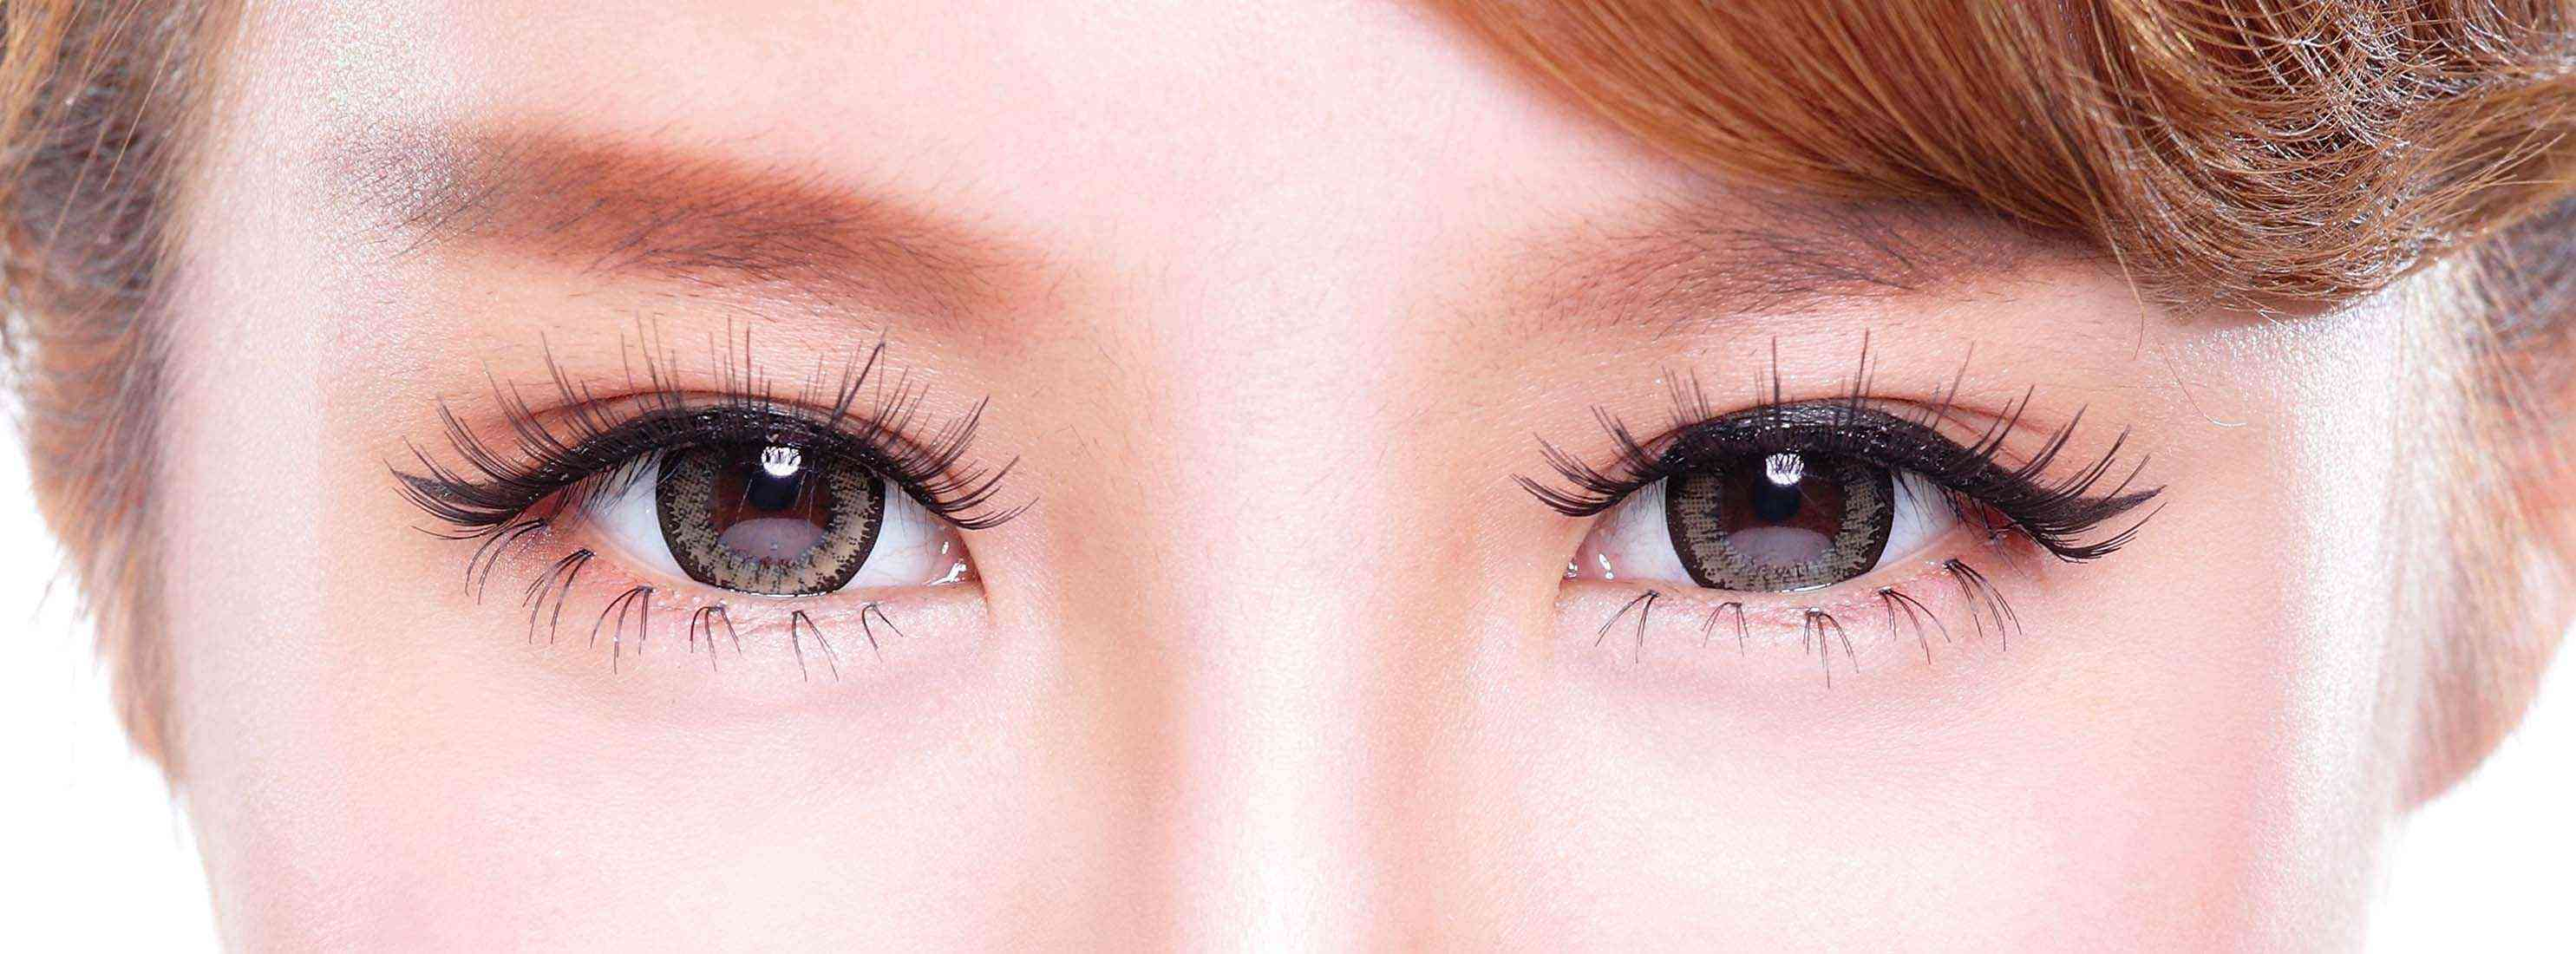 Coopervision Contact Lenses 03 2970x1100